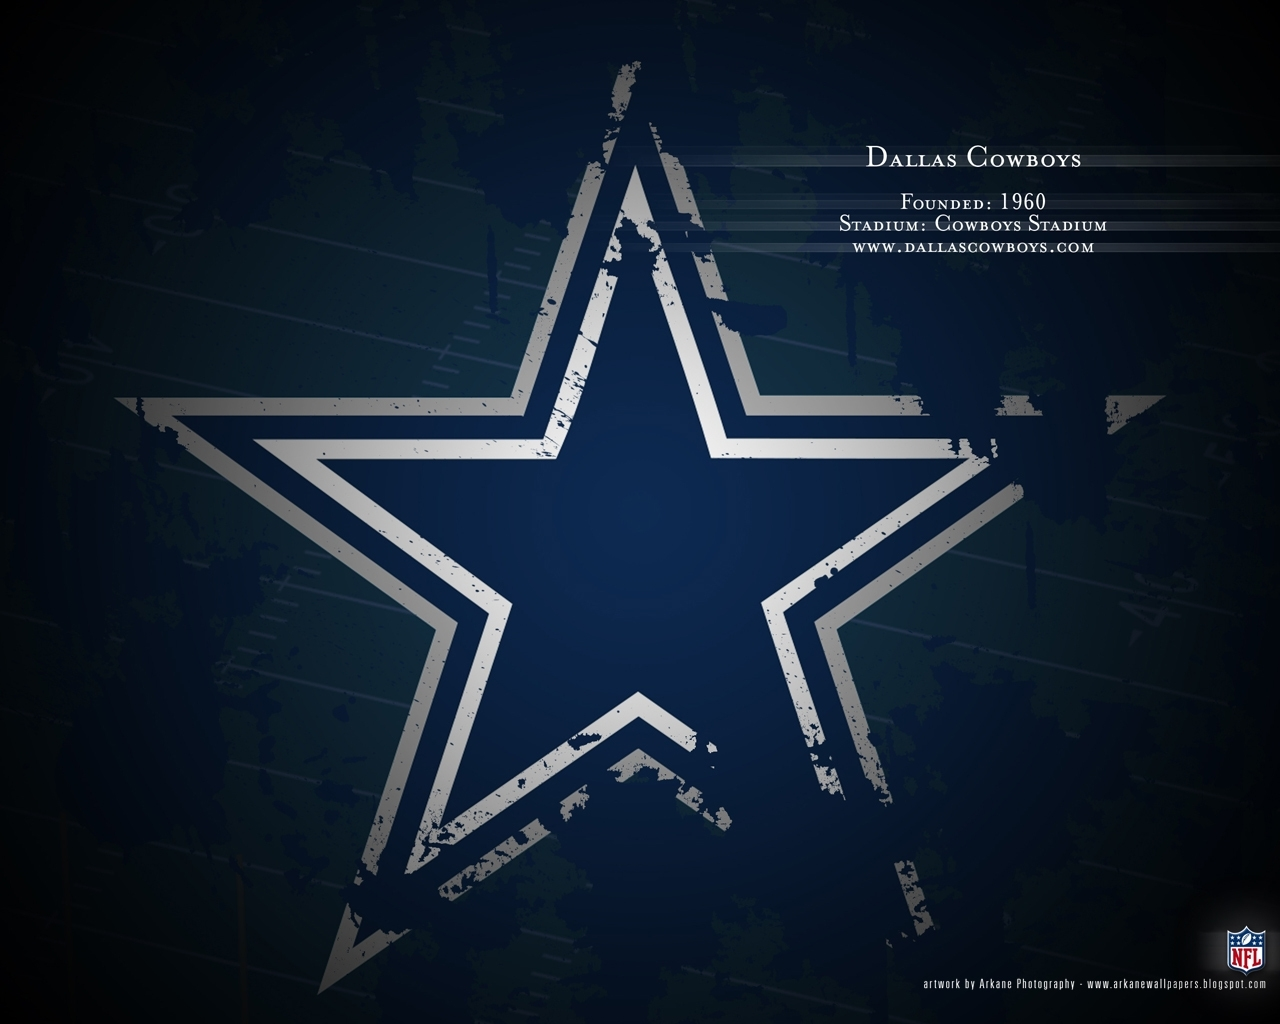 dallas cowboys logo wallpaper download free. - media file